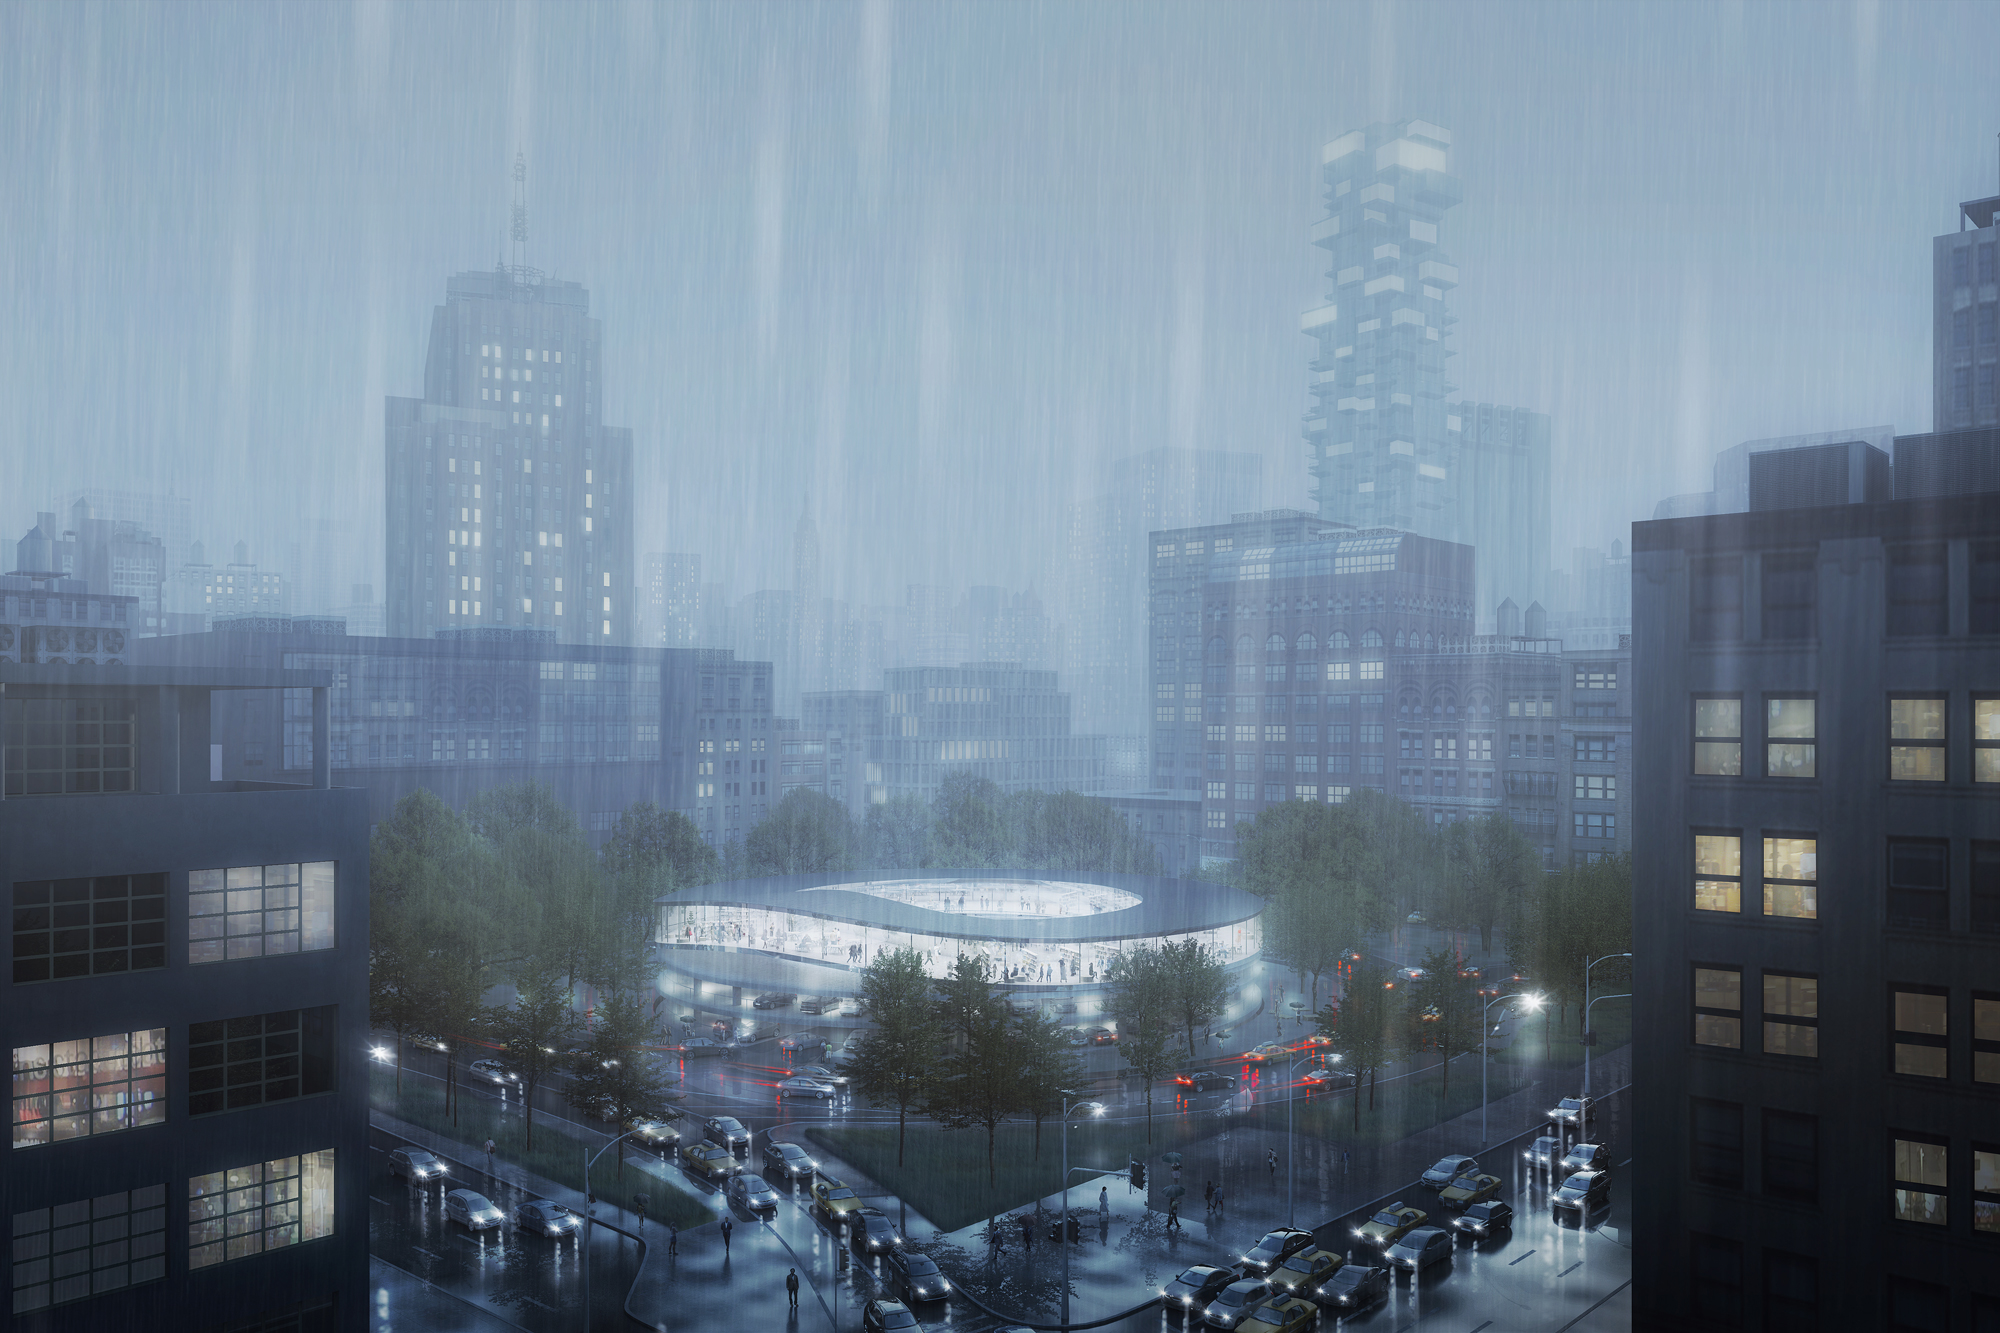 POP-UP by architectural office THIRD NATURE on a normal rainy day